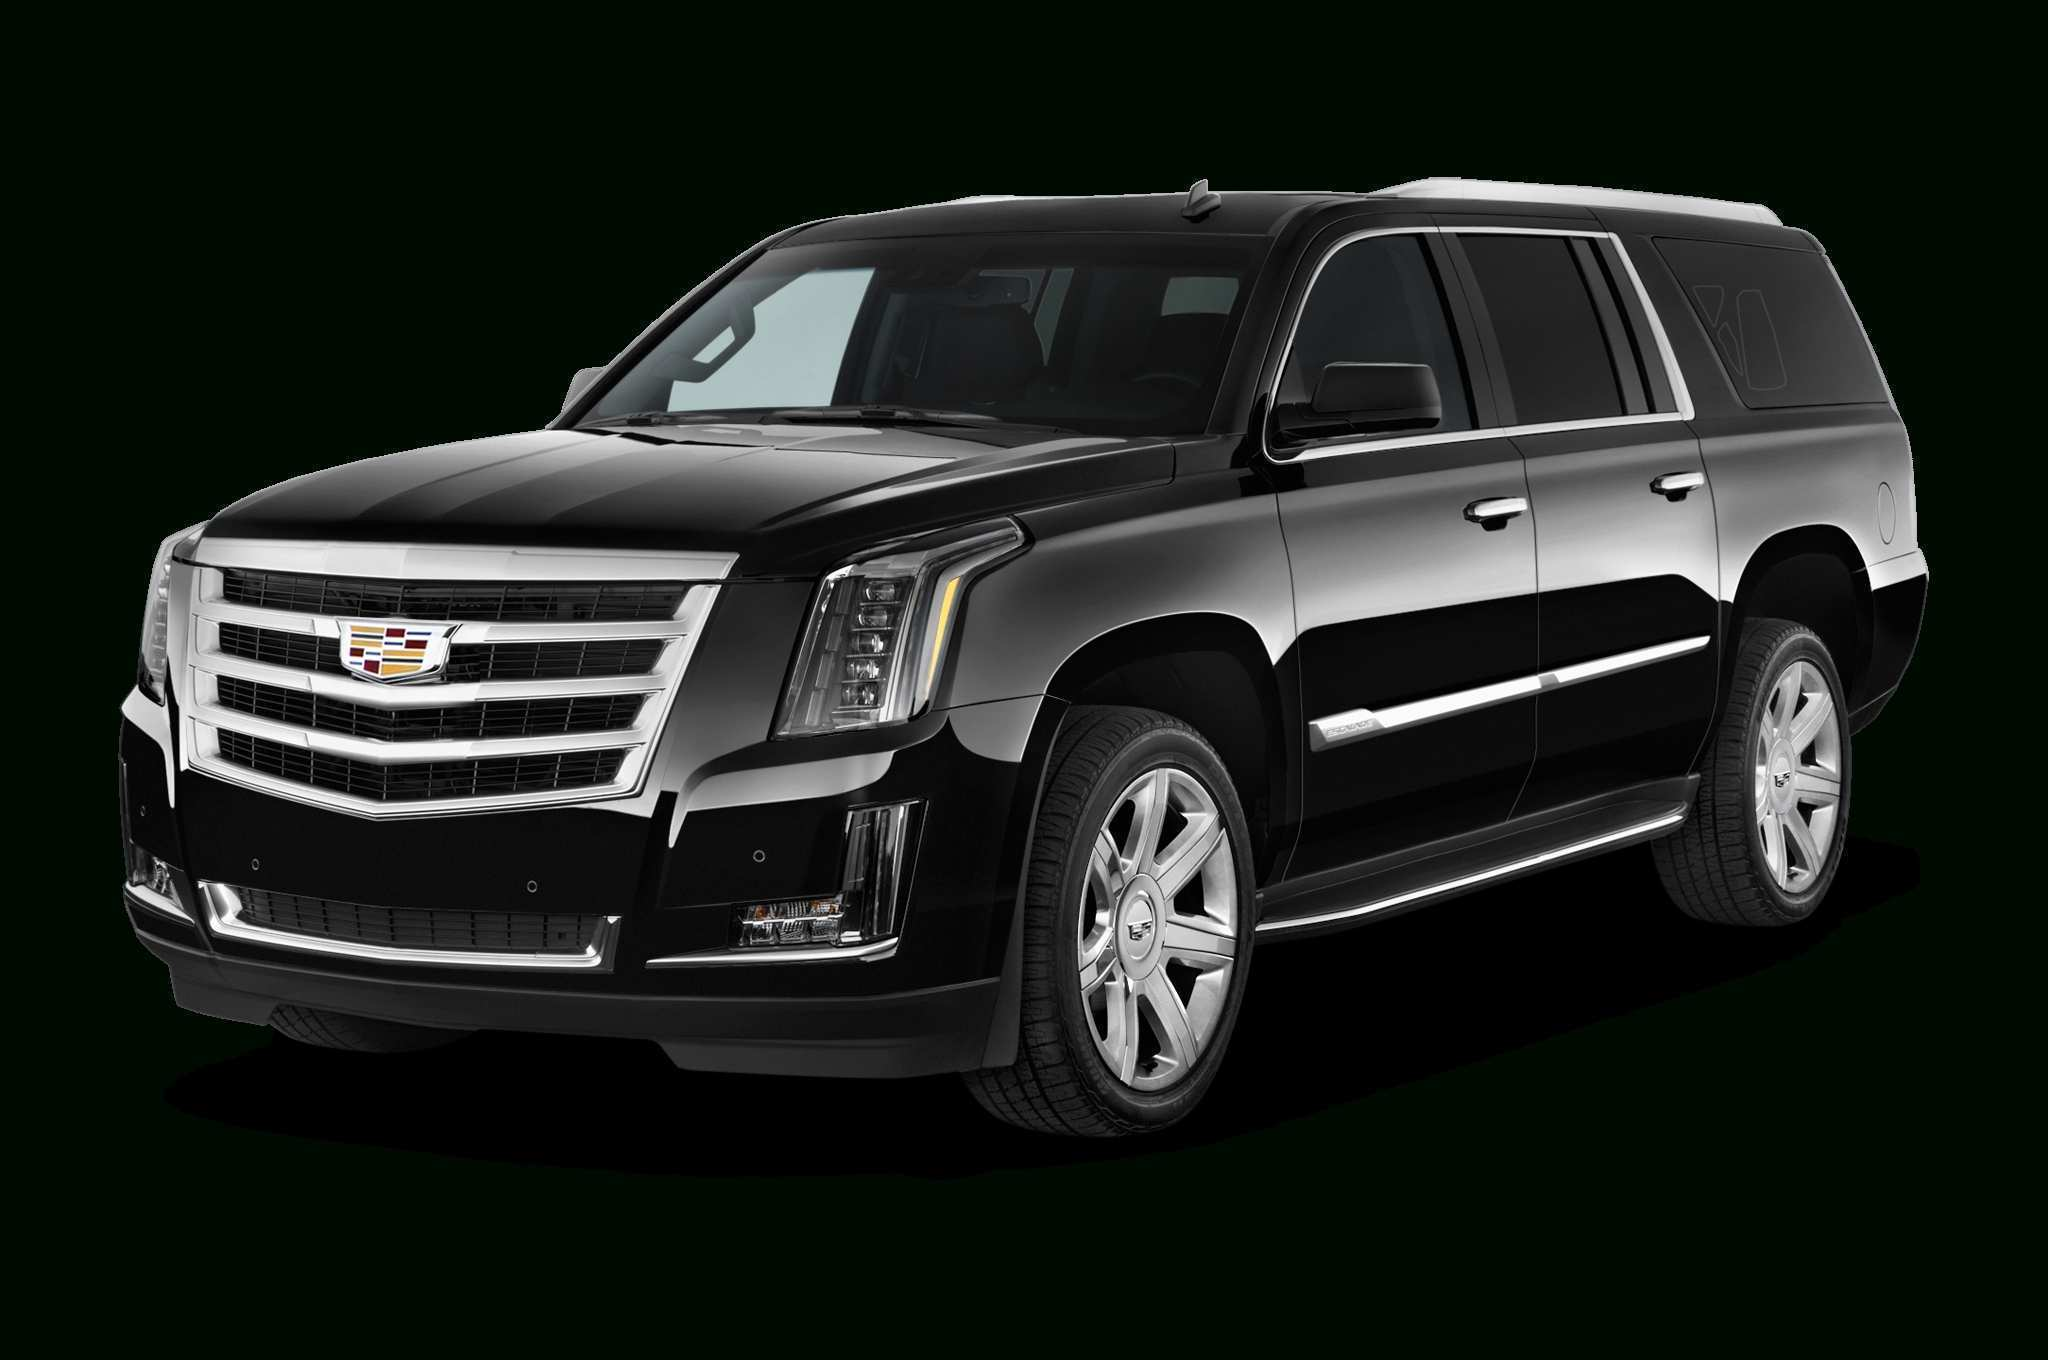 42 The 2020 Cadillac Escalade V Ext Esv Performance And New Engine